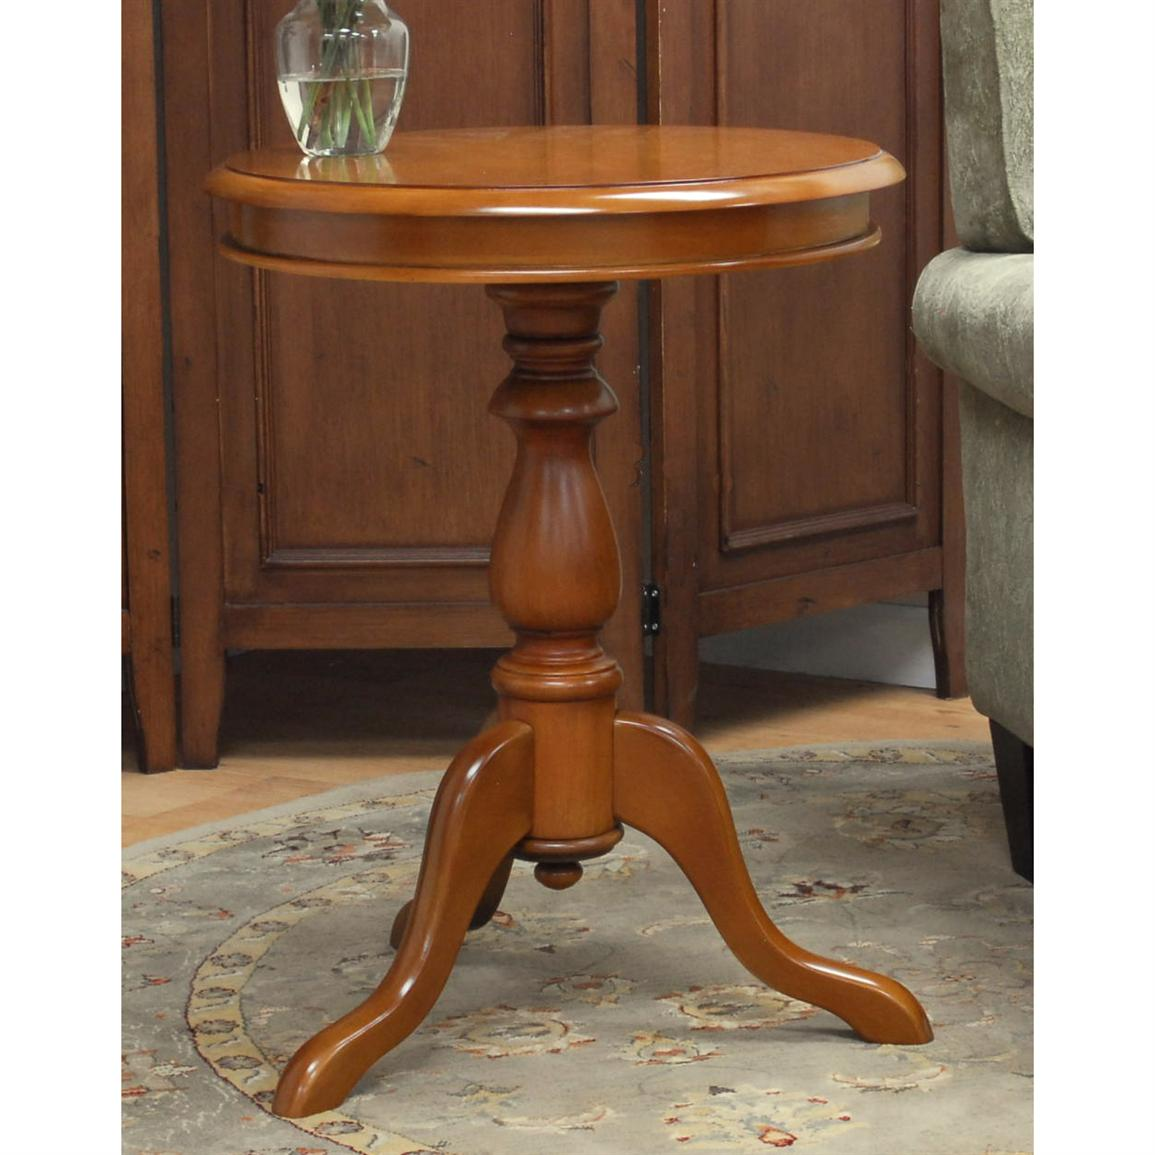 carolina chair table hepburn pedestal accent with power pier one wicker furniture small metal garden torch lamp stump dining centerpieces side cherry corner end lamps gold console